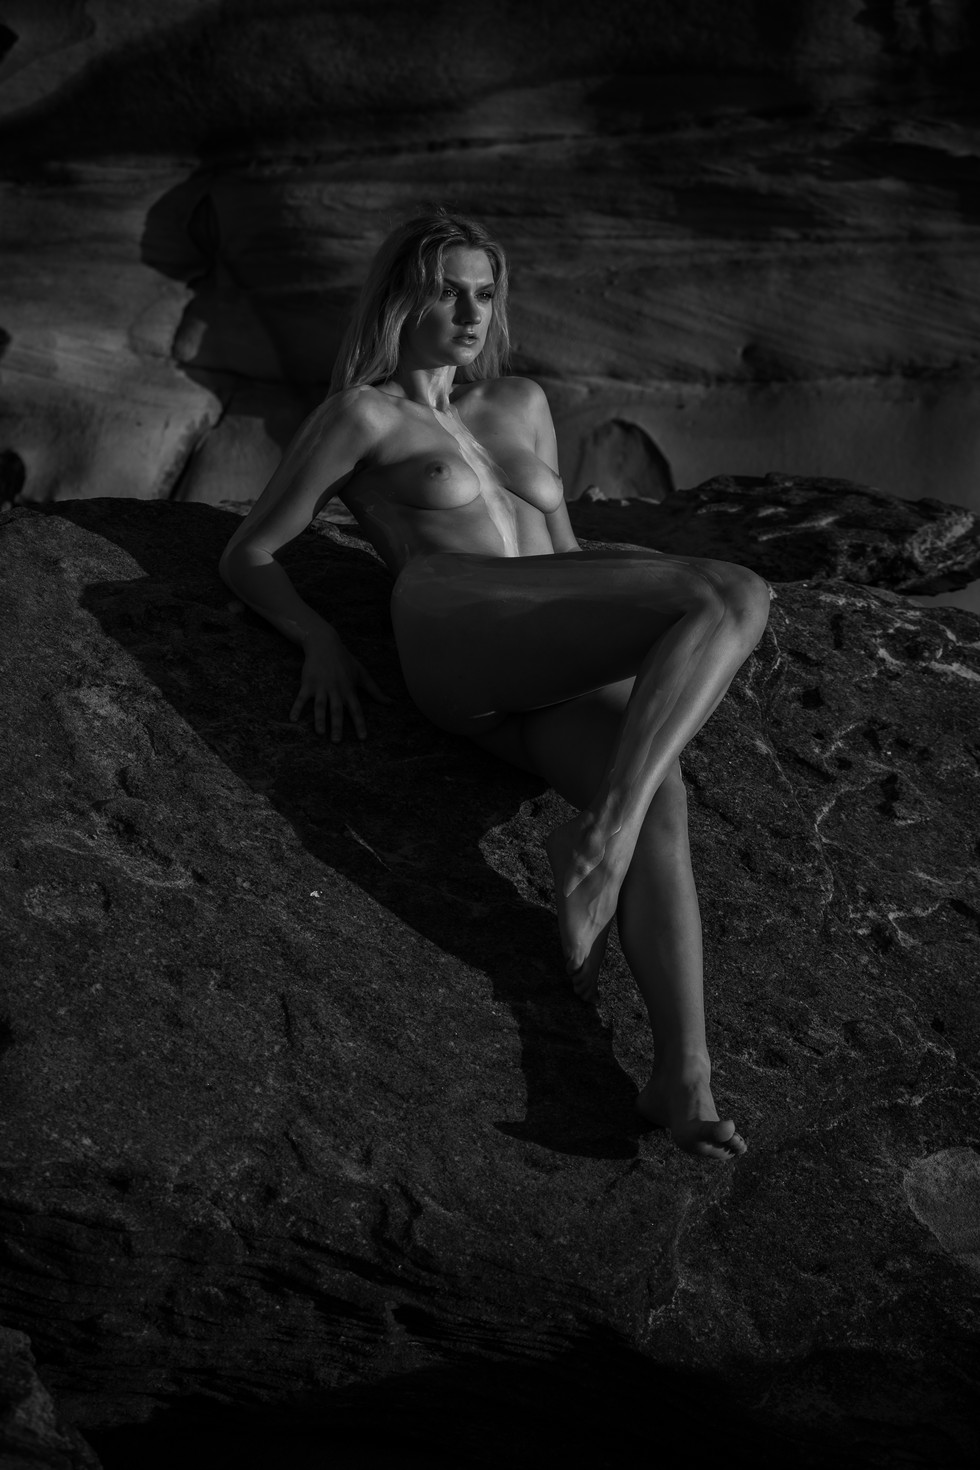 Brooke_by_CoogeePhotography-41863.jpg